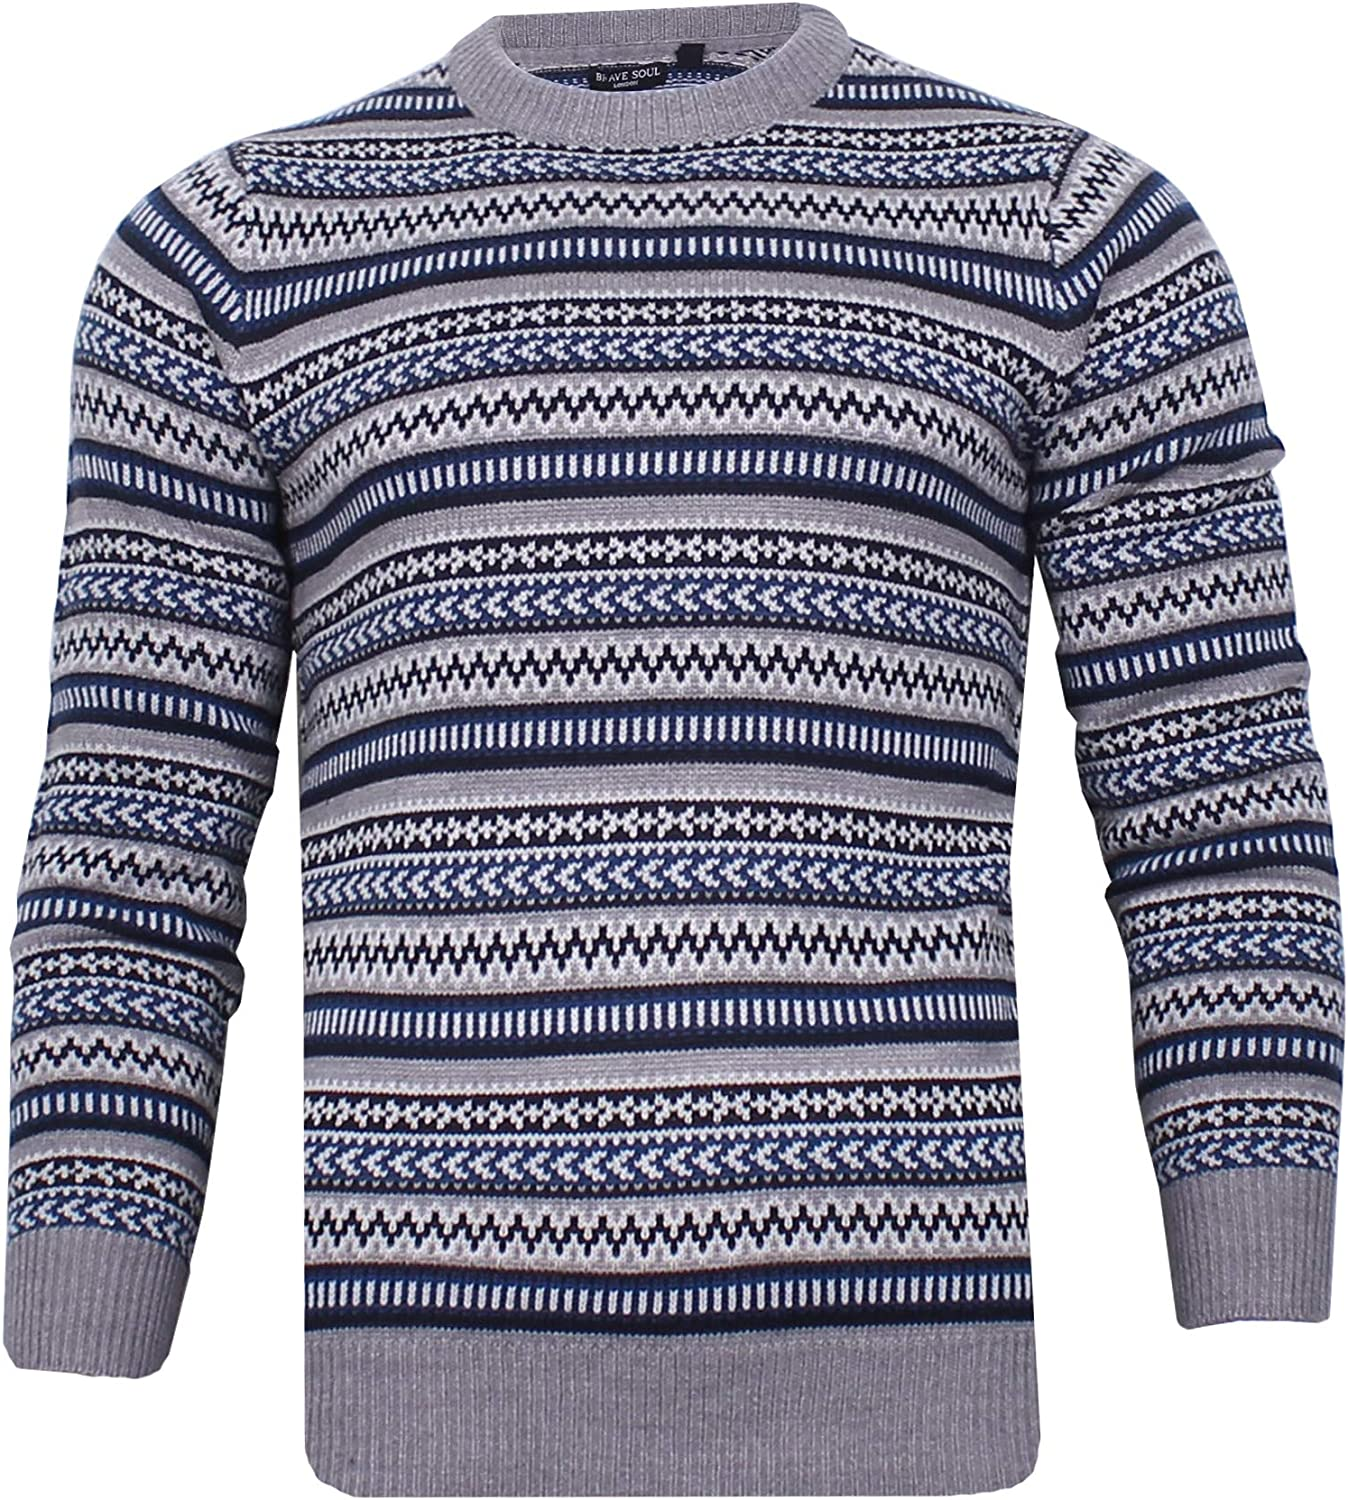 1940s Men's Shirts, Sweaters, Vests BRAVE SOUL Mens Knitted Fairisle Jumper Christmas Crew Neck Winter Knitwear £17.99 AT vintagedancer.com